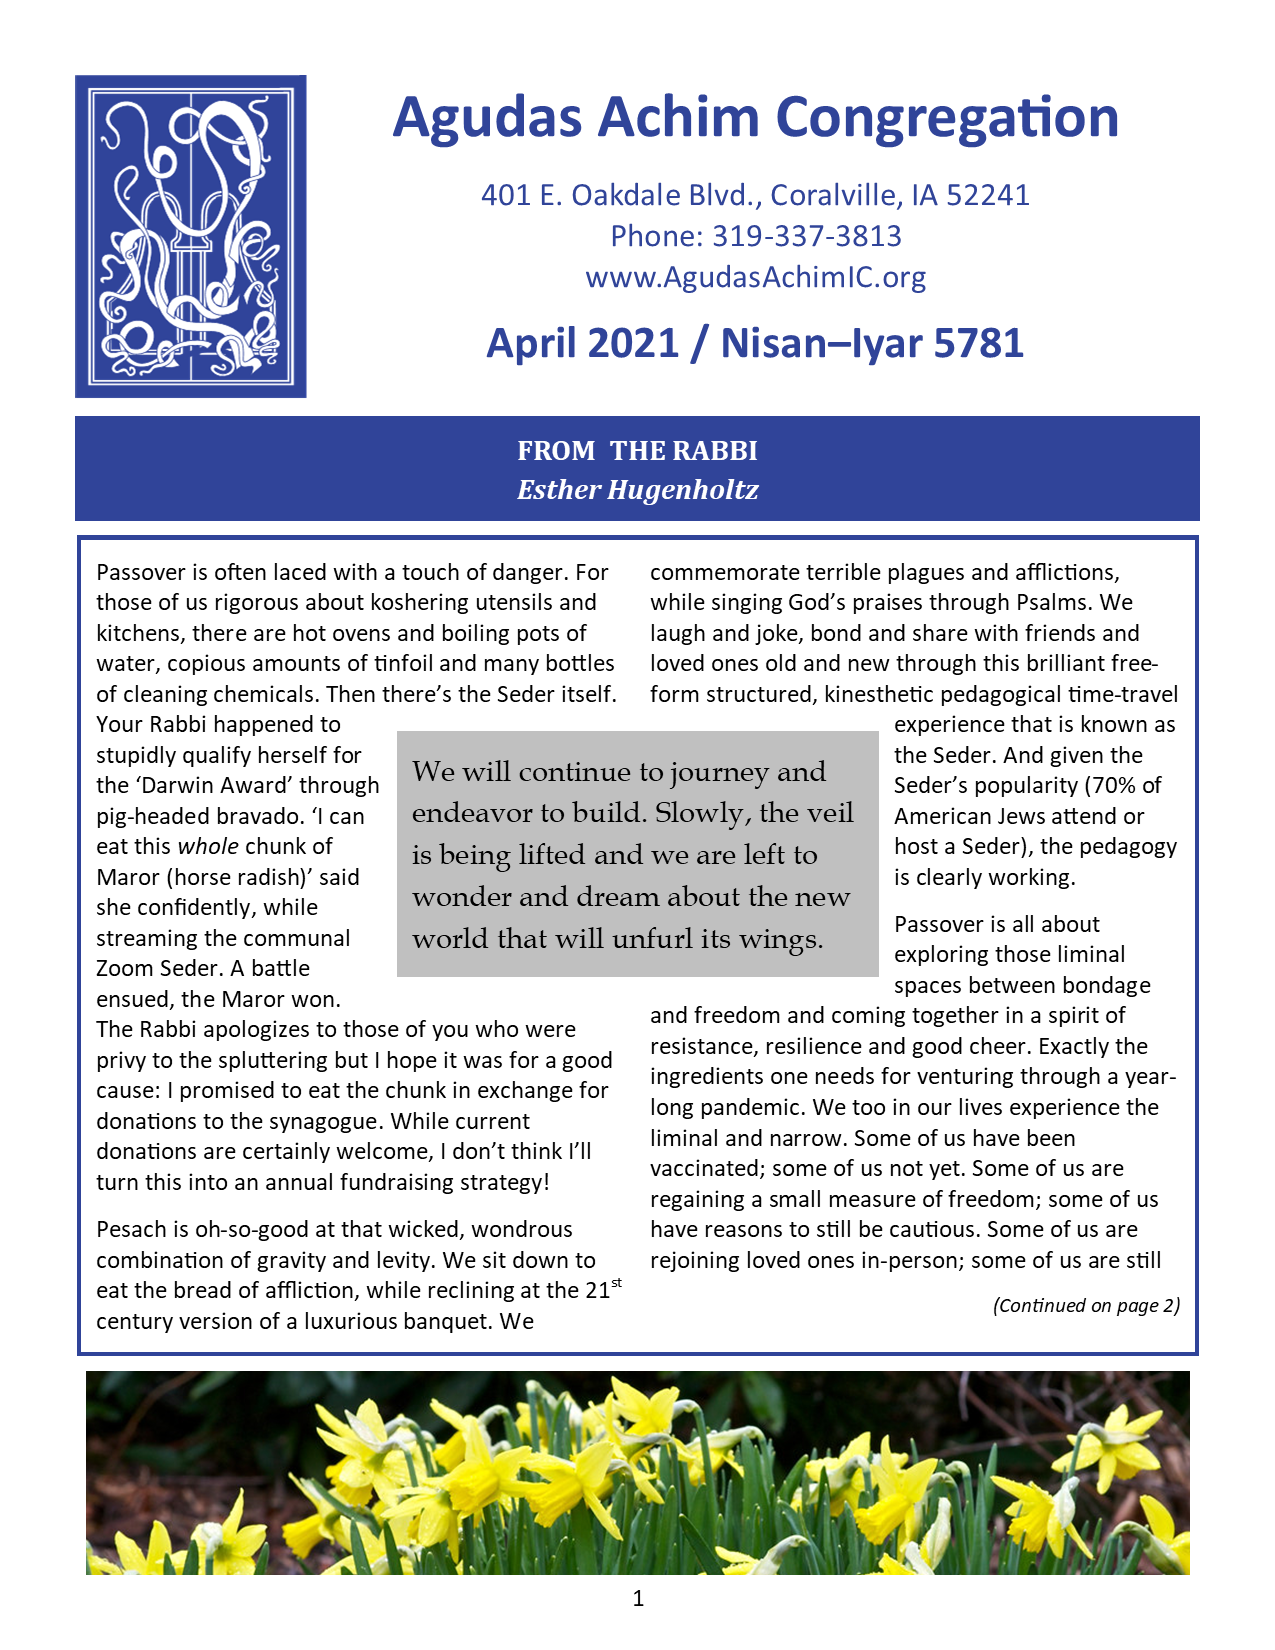 April 2021 Bulletin Cover